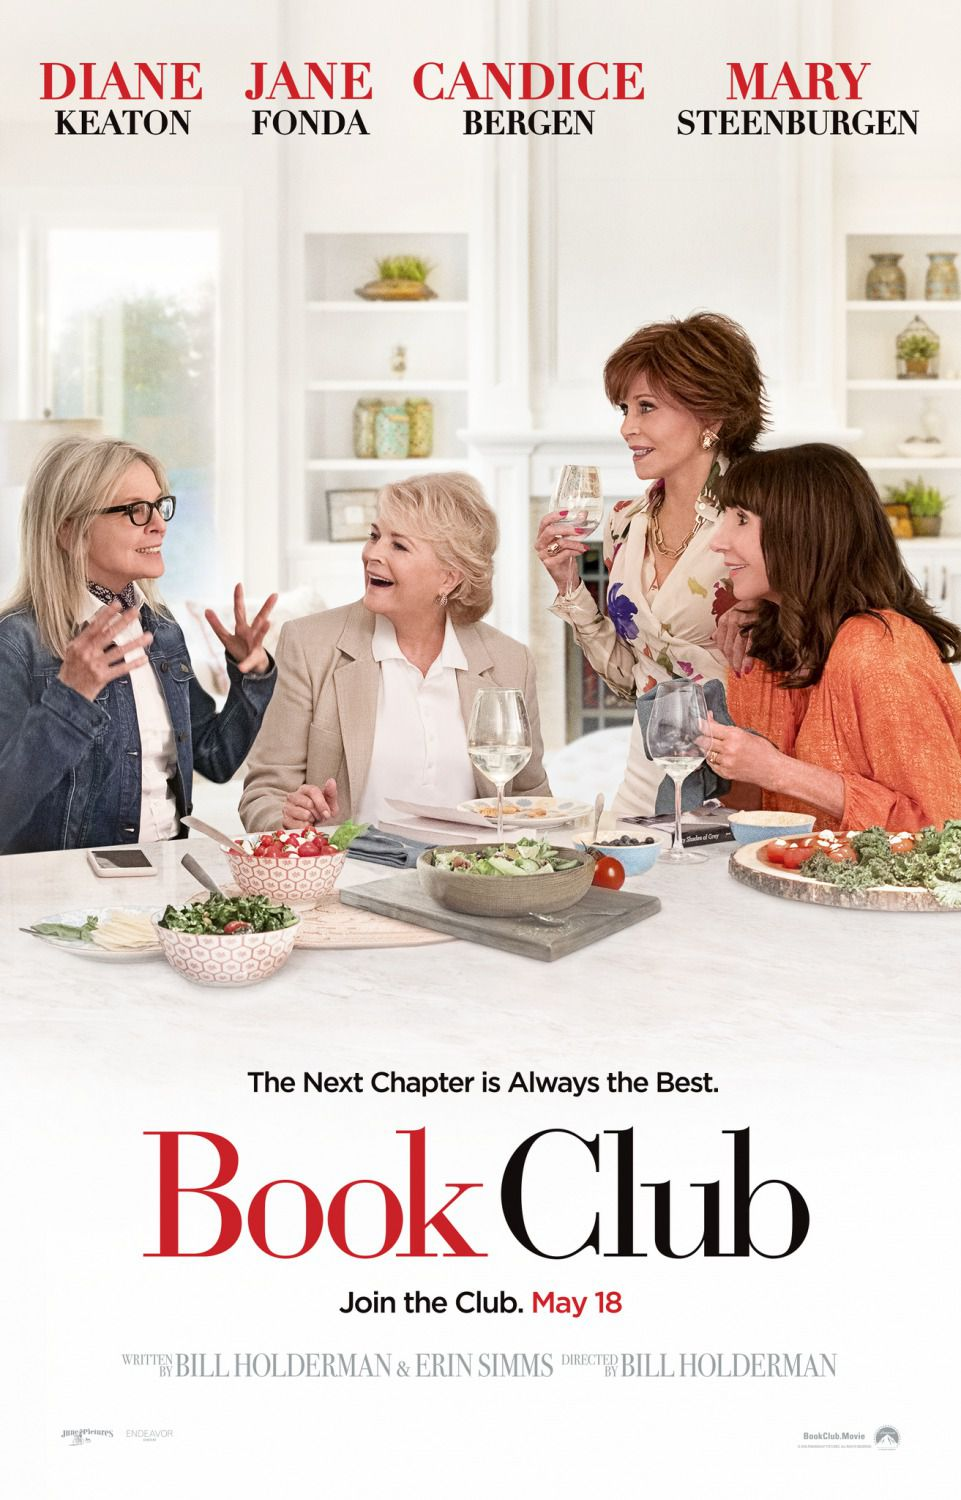 Book Club - Diane Keaton, Jane Fonda, Candice Bergen, Mary Steenburgen - poster 2018